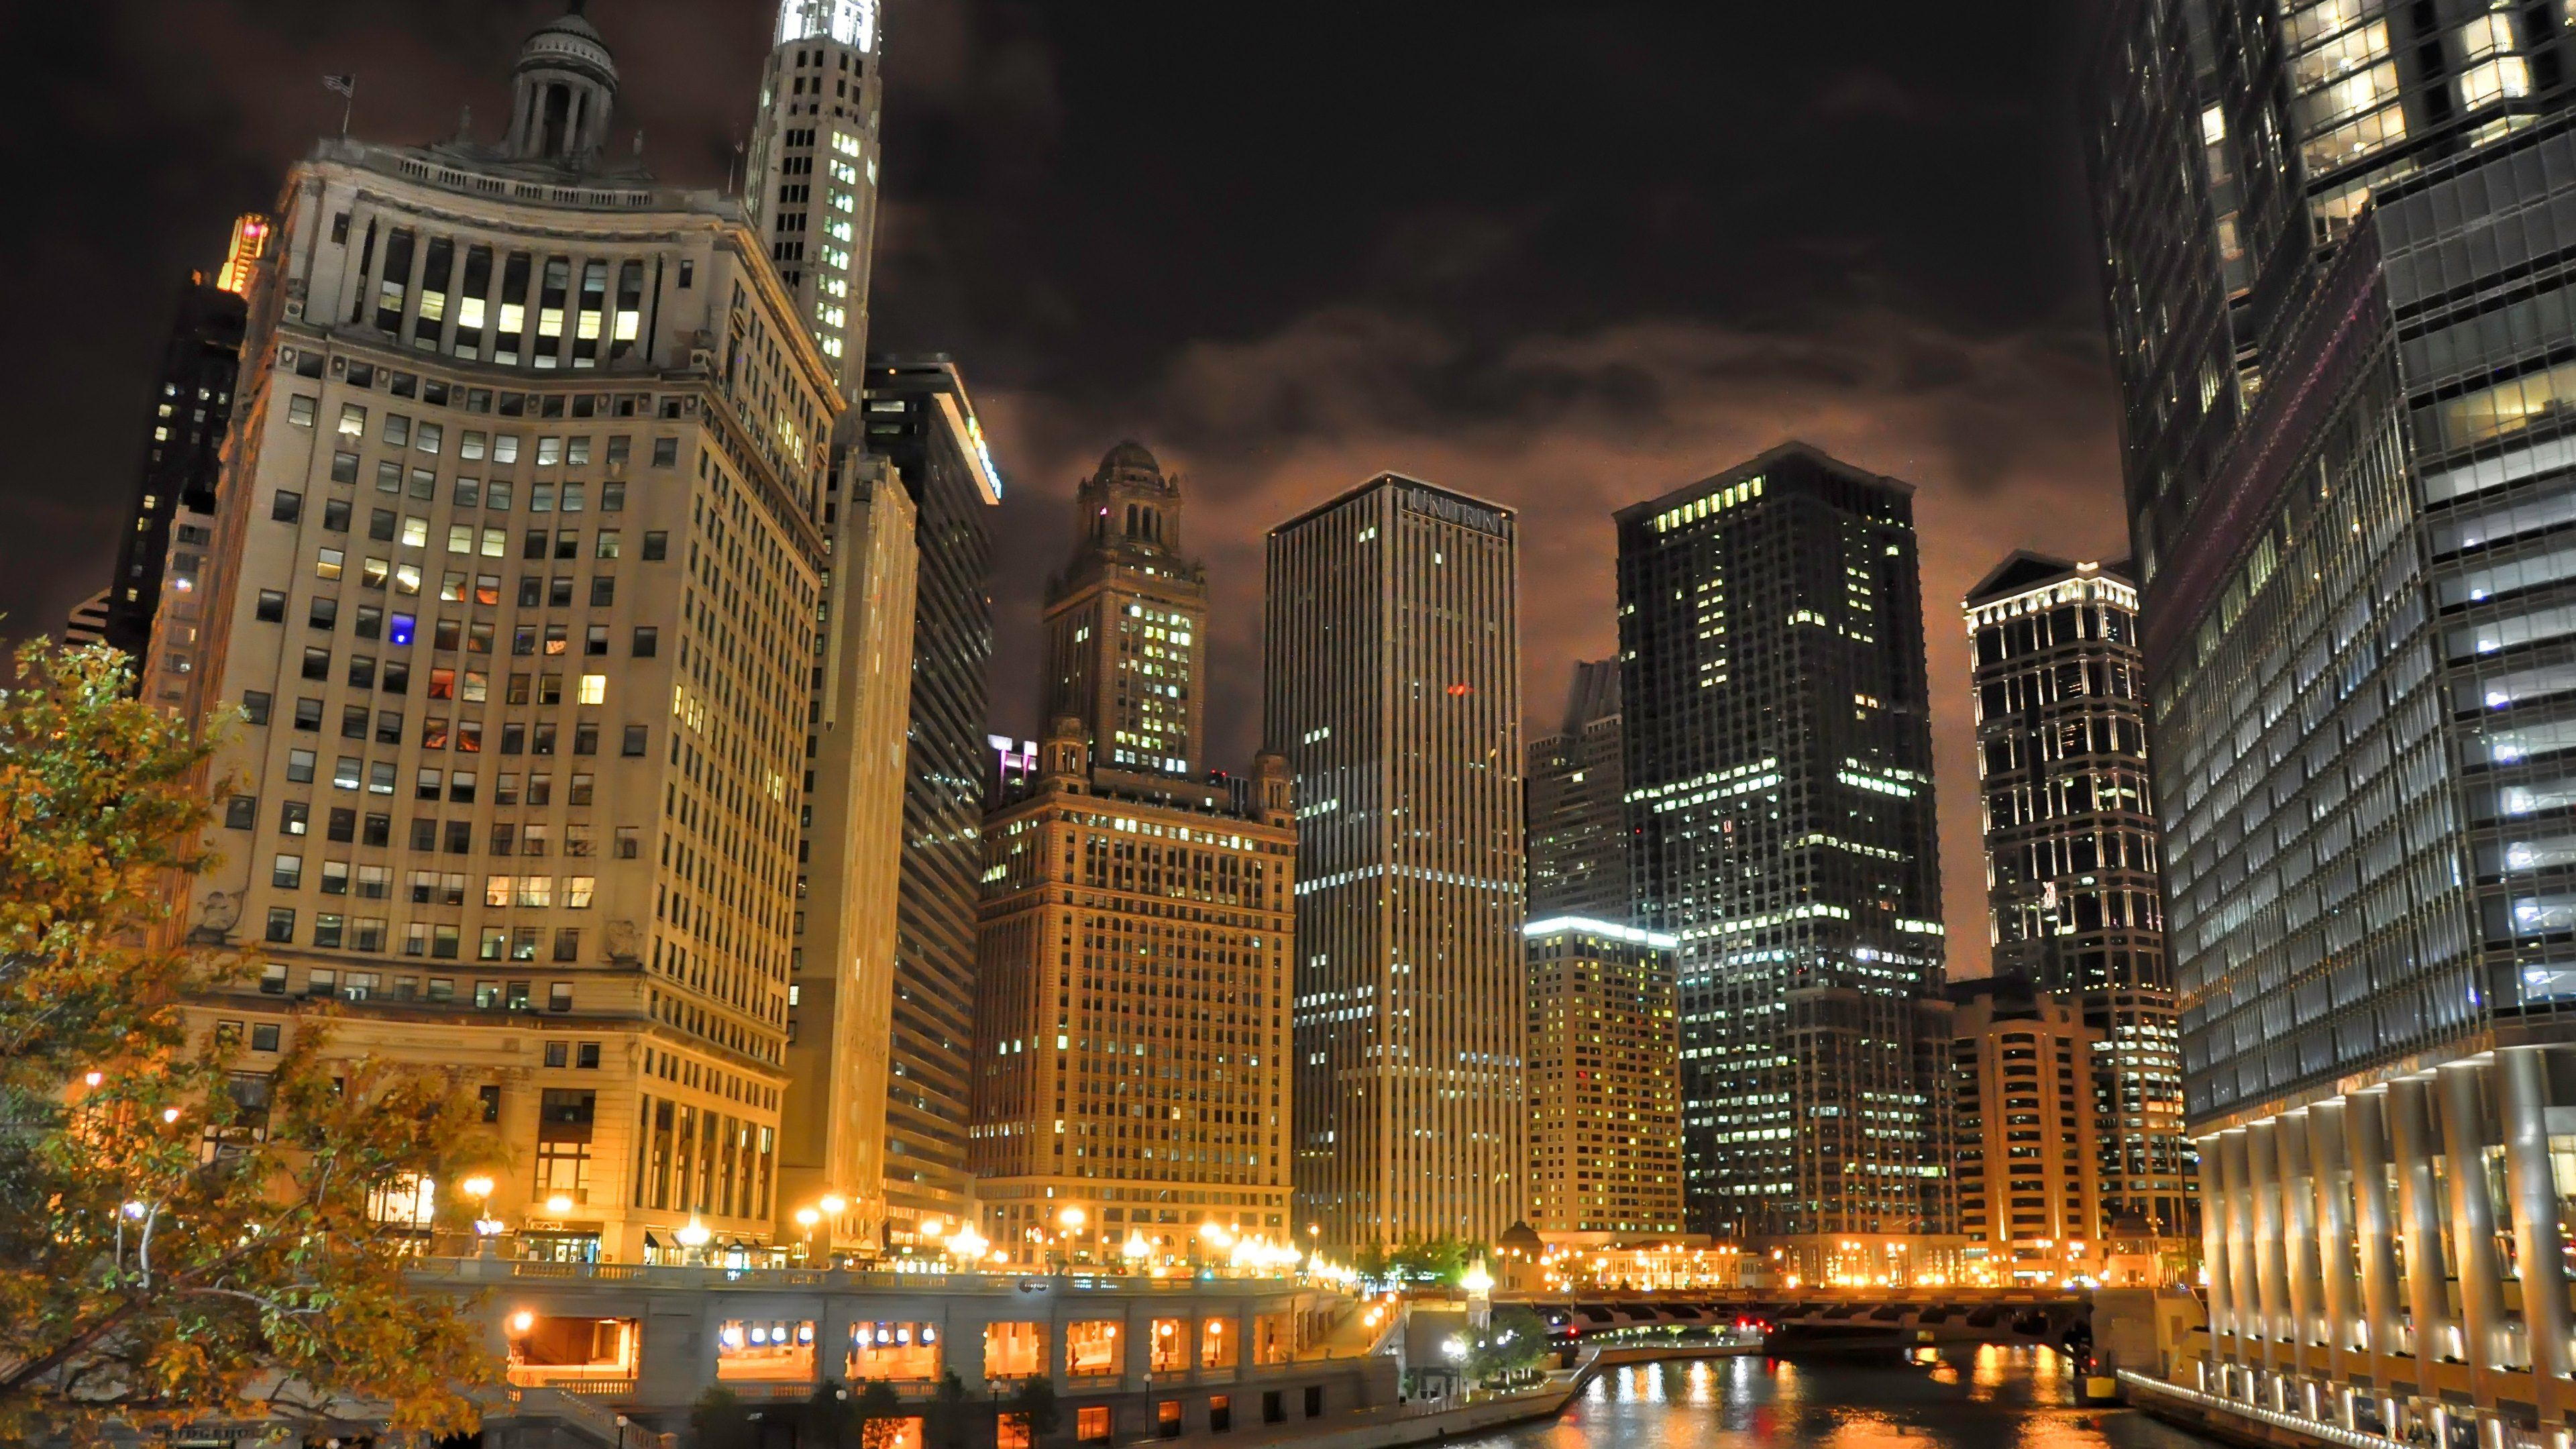 Must see Wallpaper Macbook Chicago - 2c285f9aad9422ce7bb4c660f605ba82  Graphic_905960.jpg